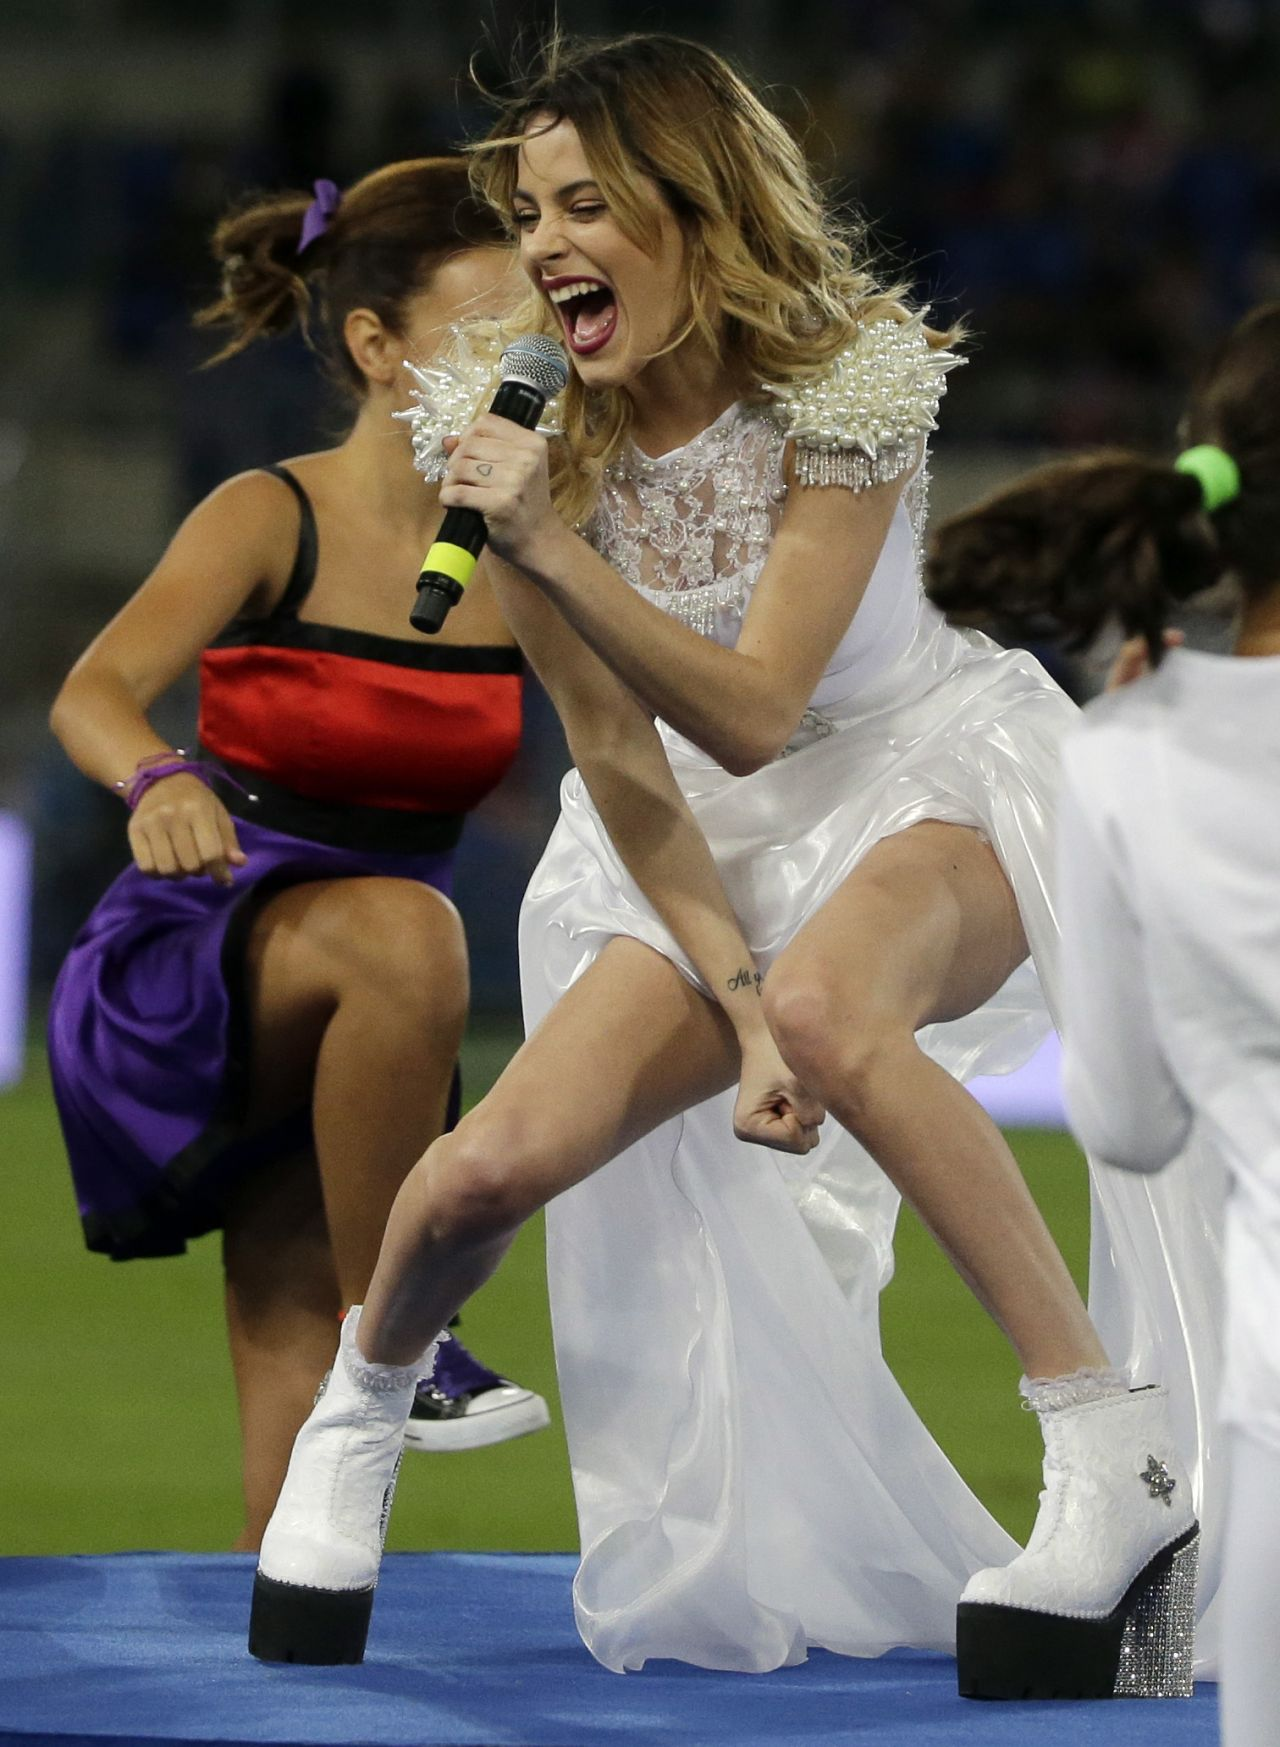 Martina Stoessel Performs at Rome